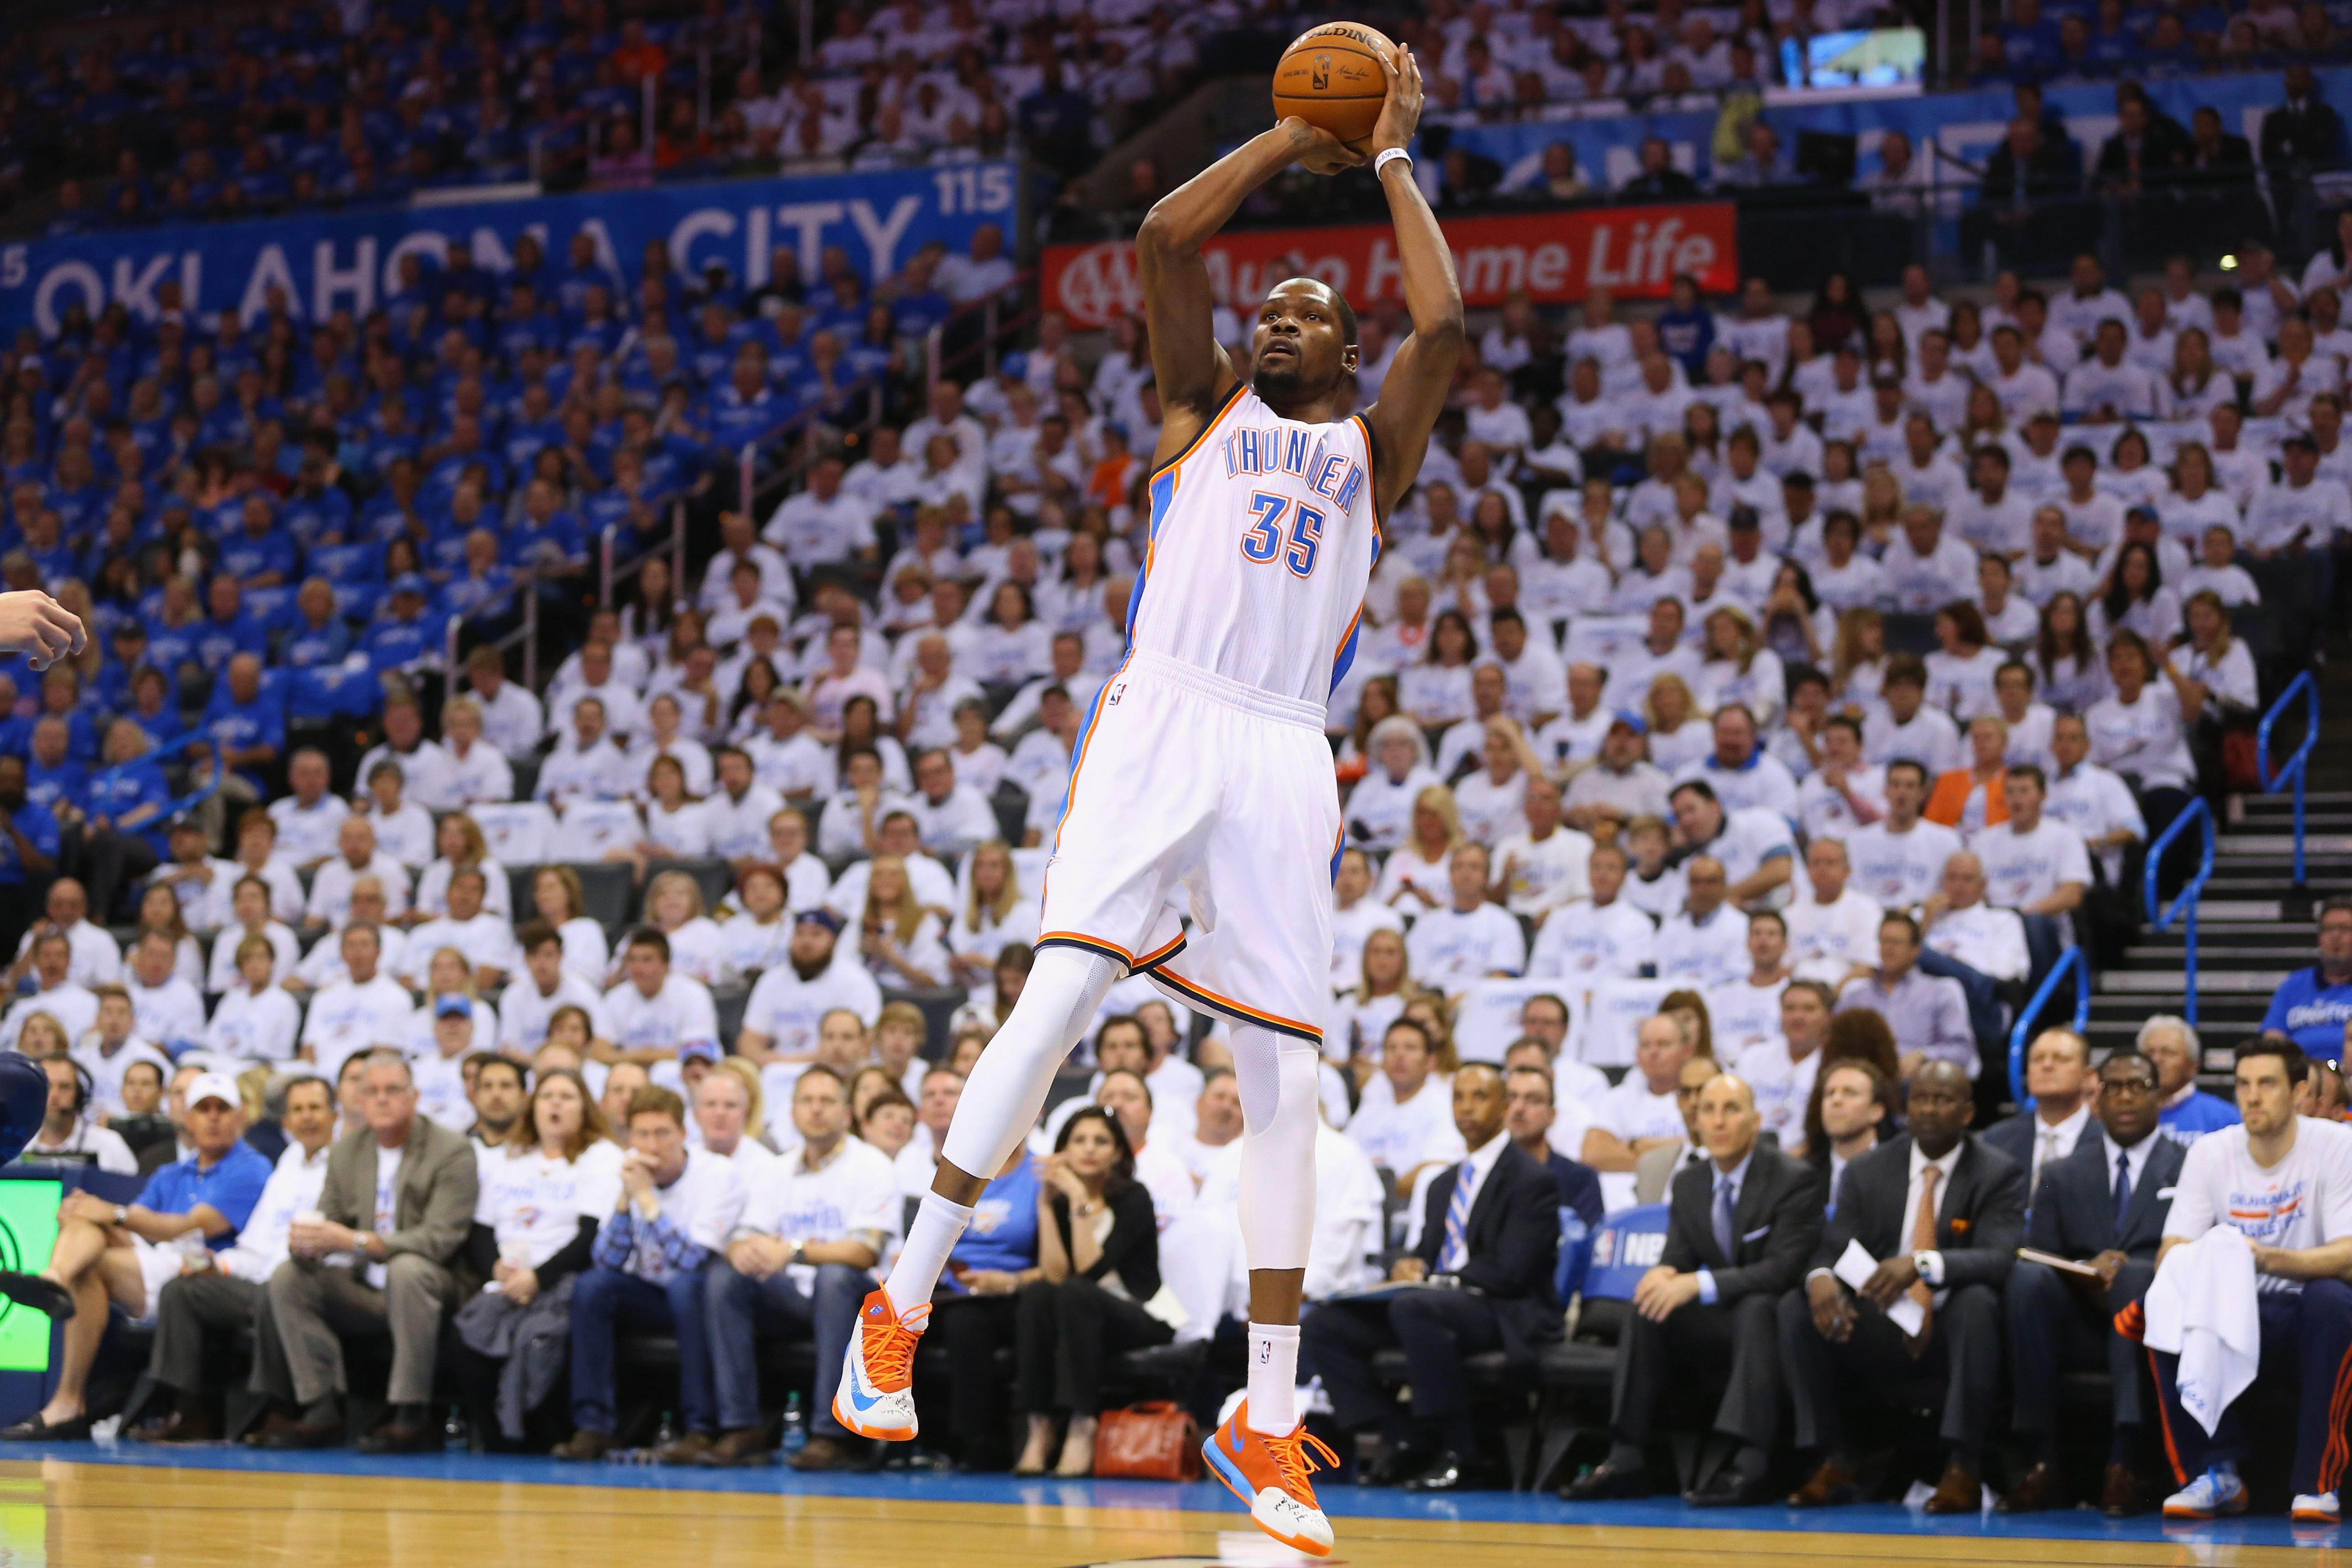 024342cde1d kevin durant shooting - Google Search